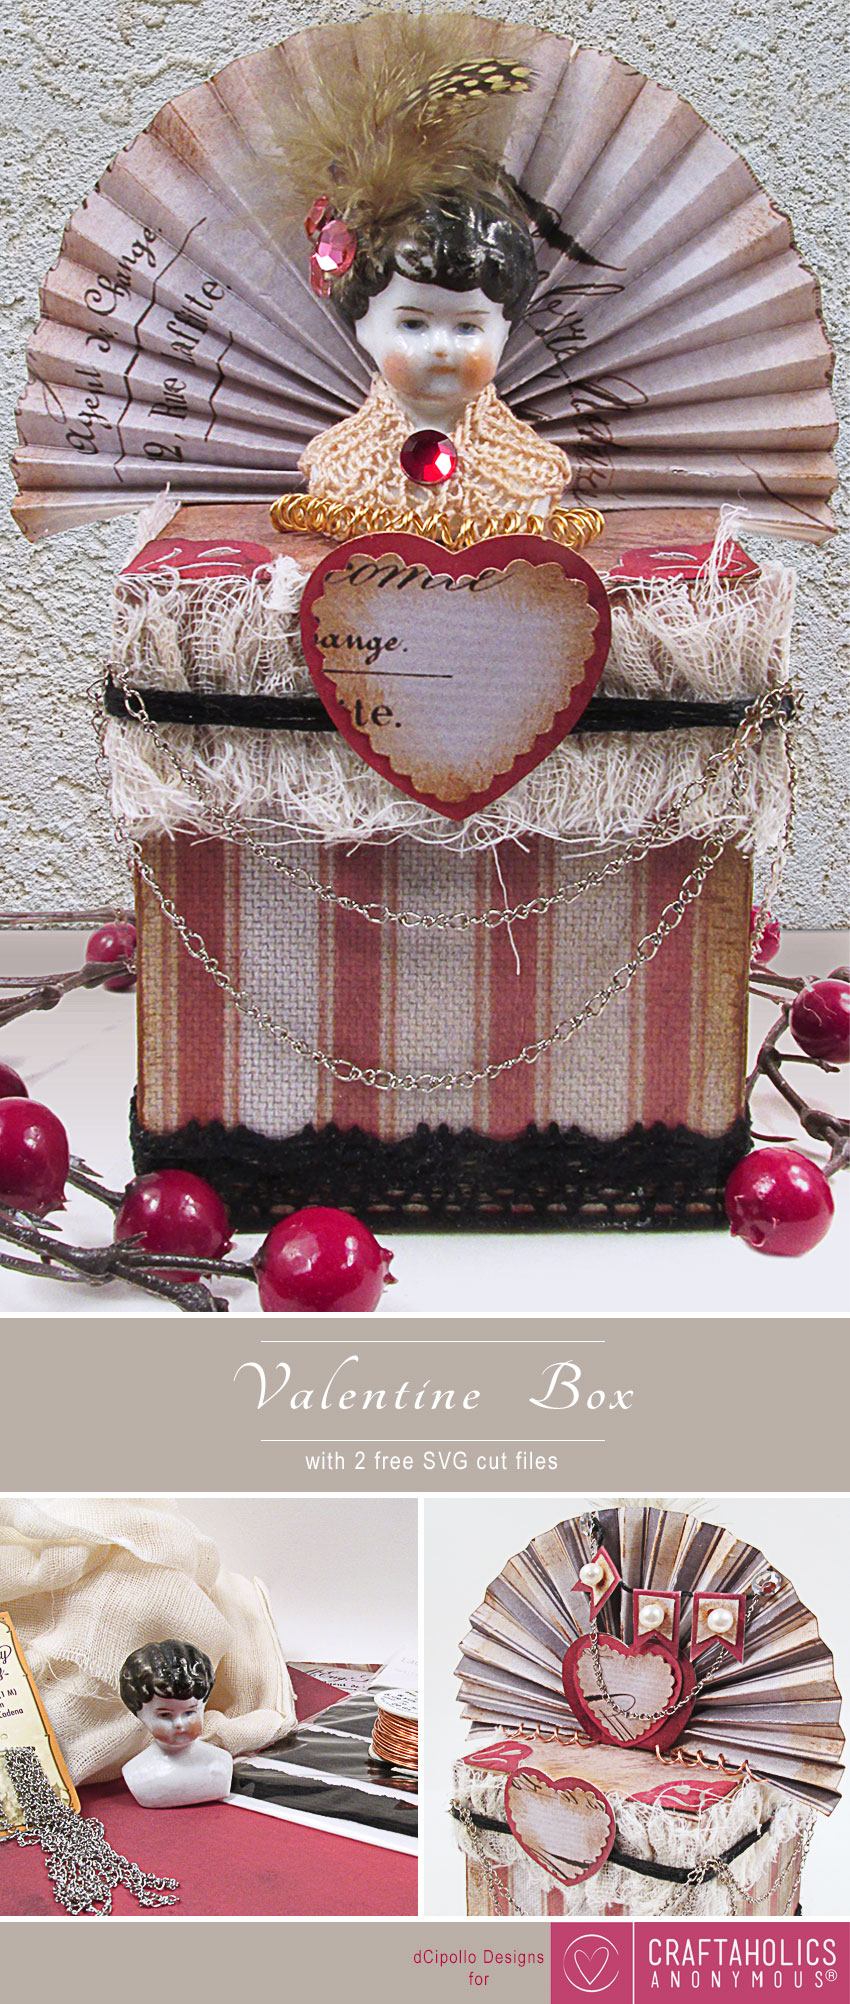 Valentine Box Pinterest dCipollo Designs